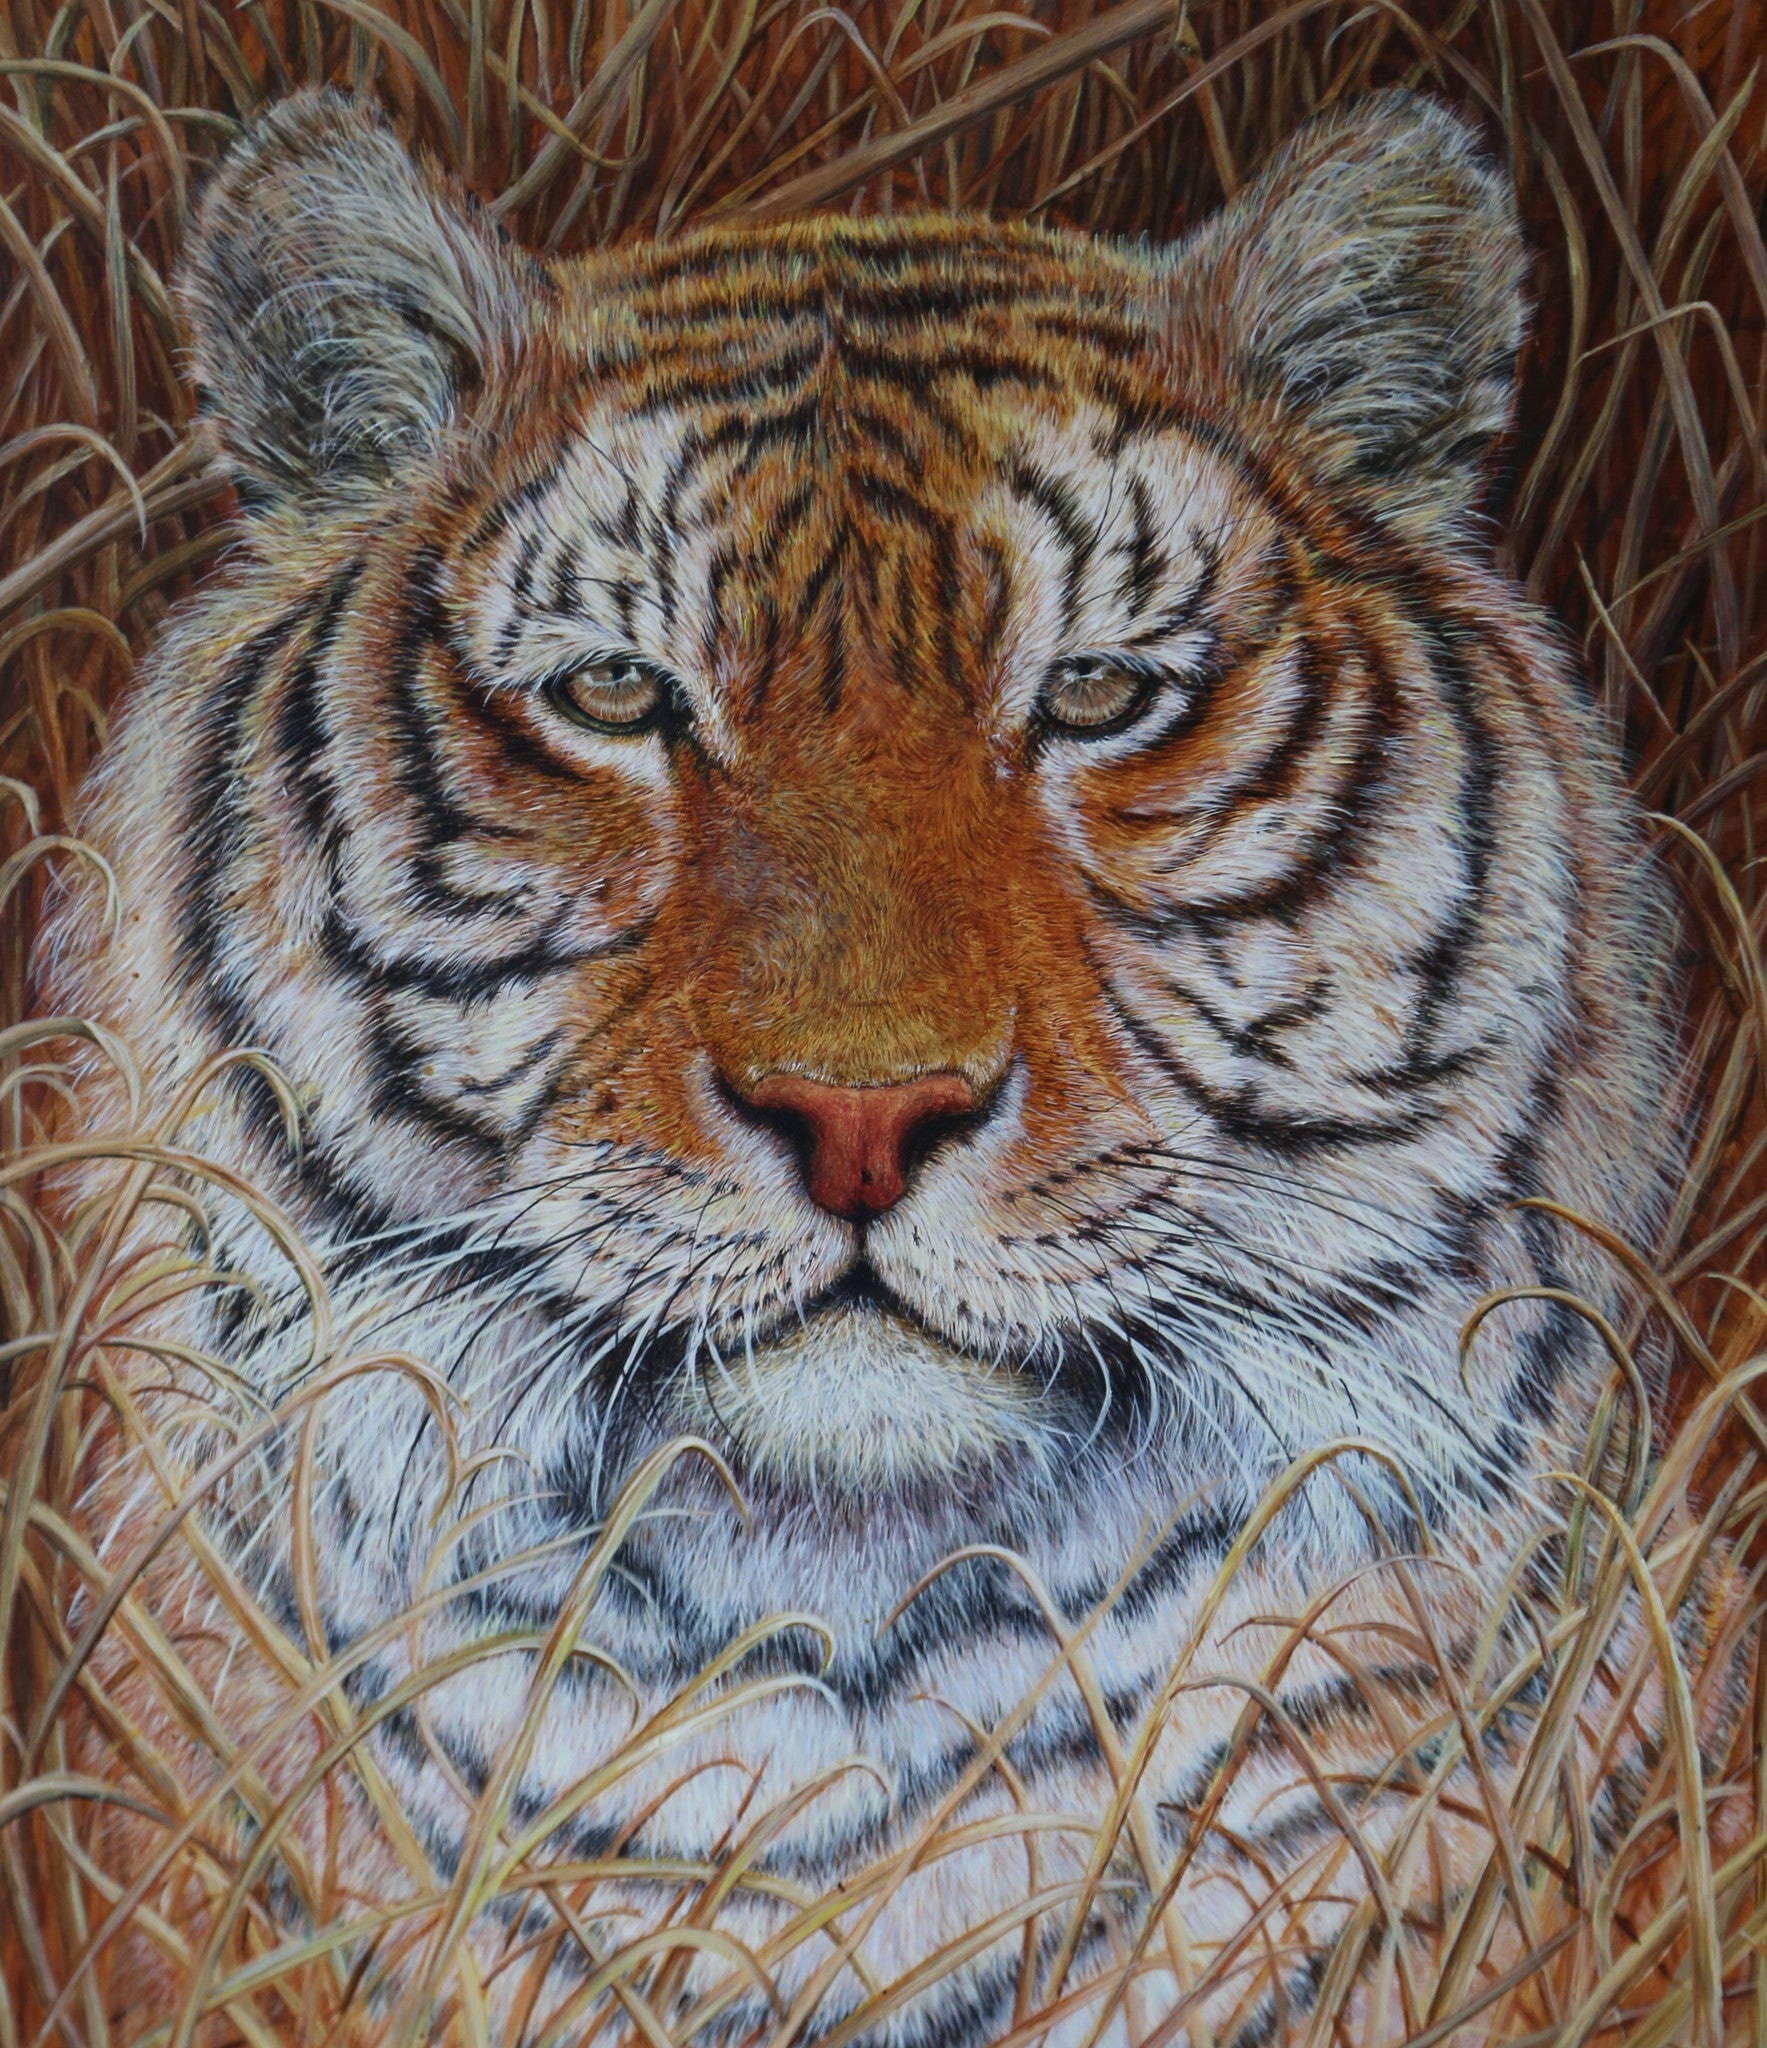 Tiger painting by Stephen Hewer close up